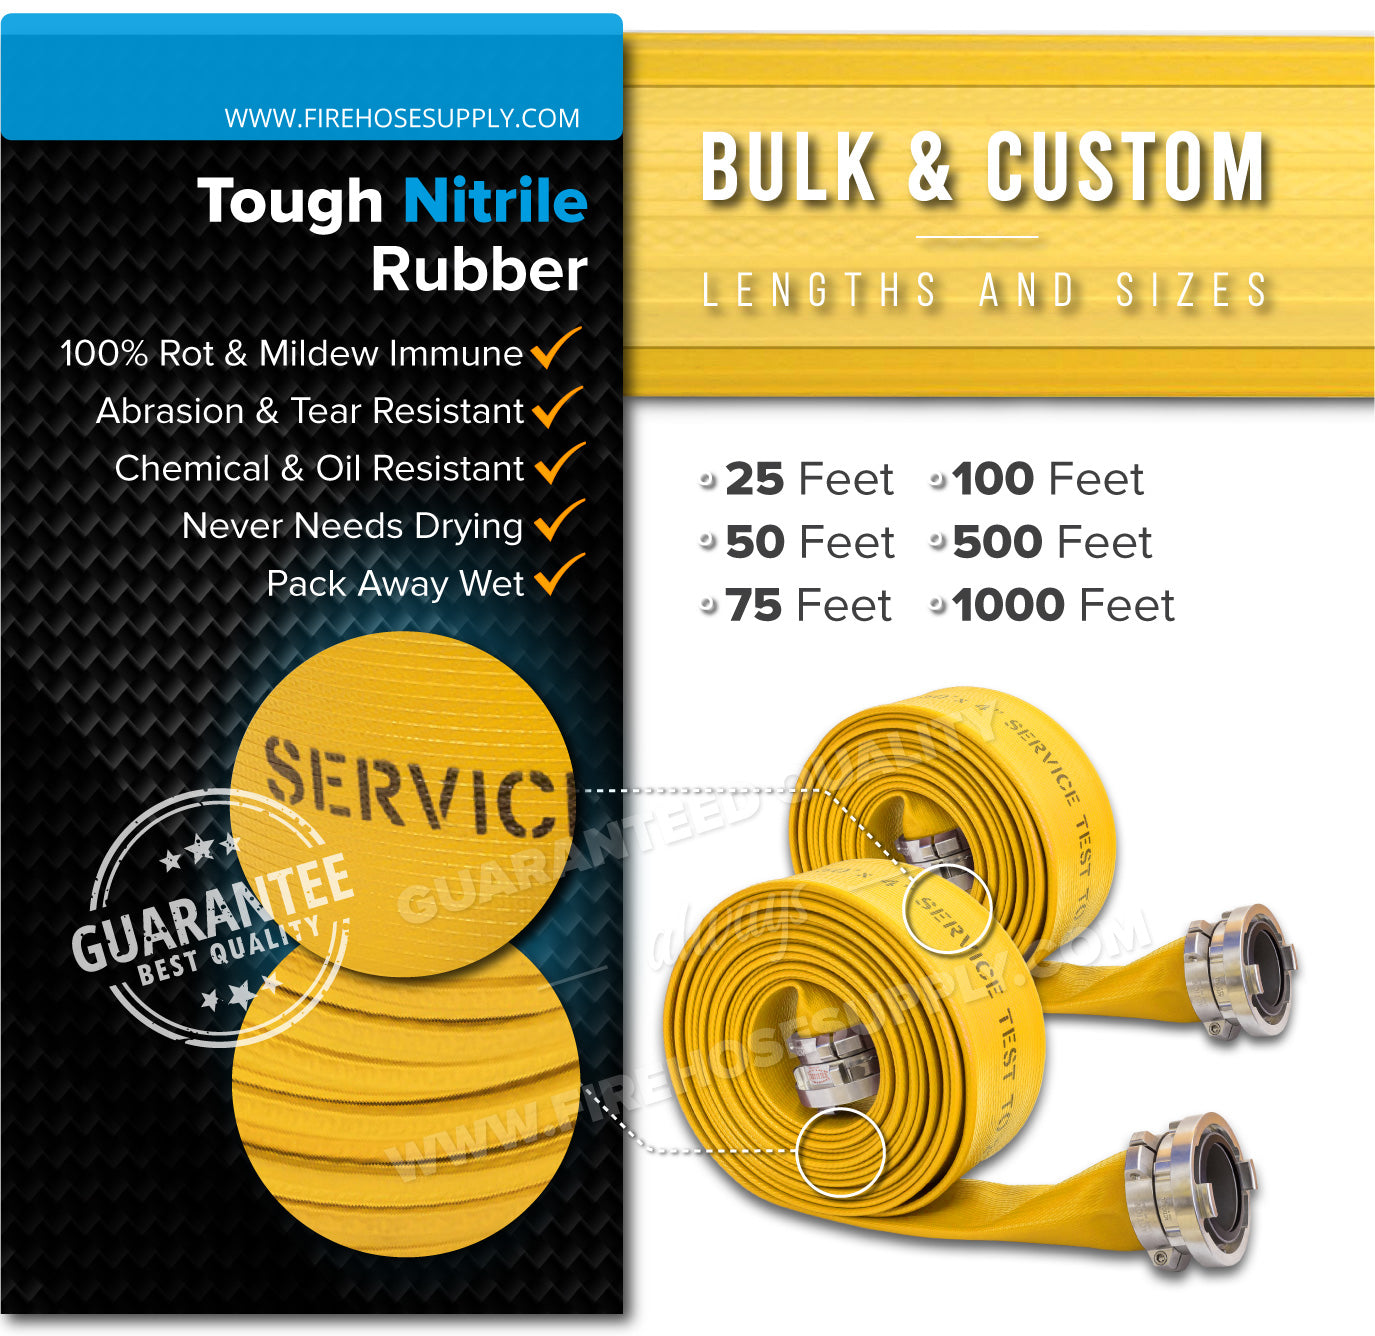 6 Inch Fire Hose Rubber Durable Nitrile Material